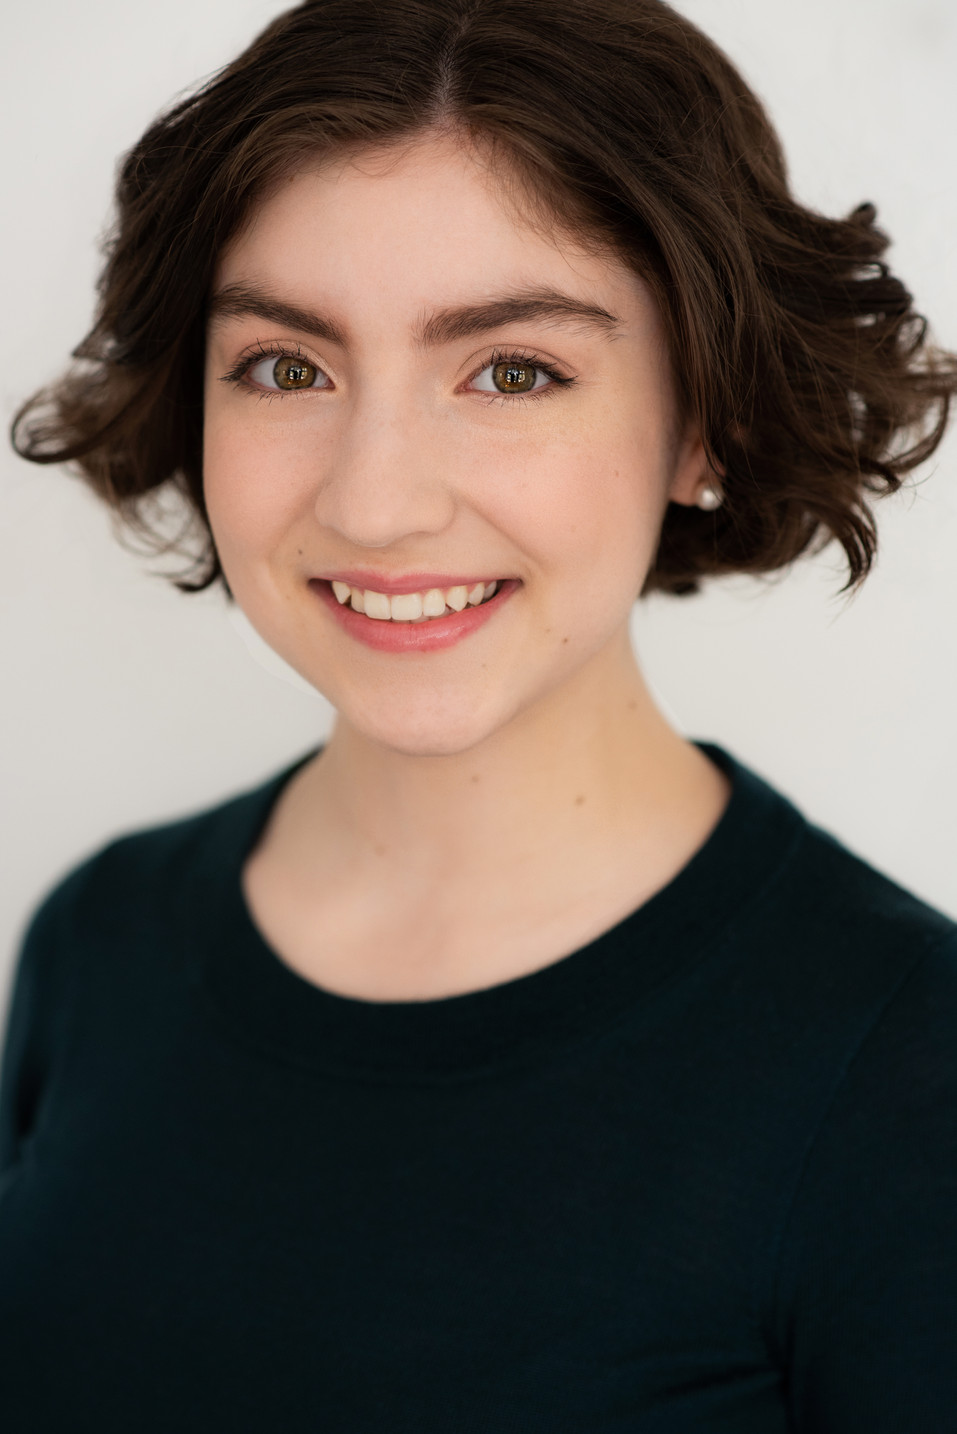 A teenage actress with a great smiling headshot.